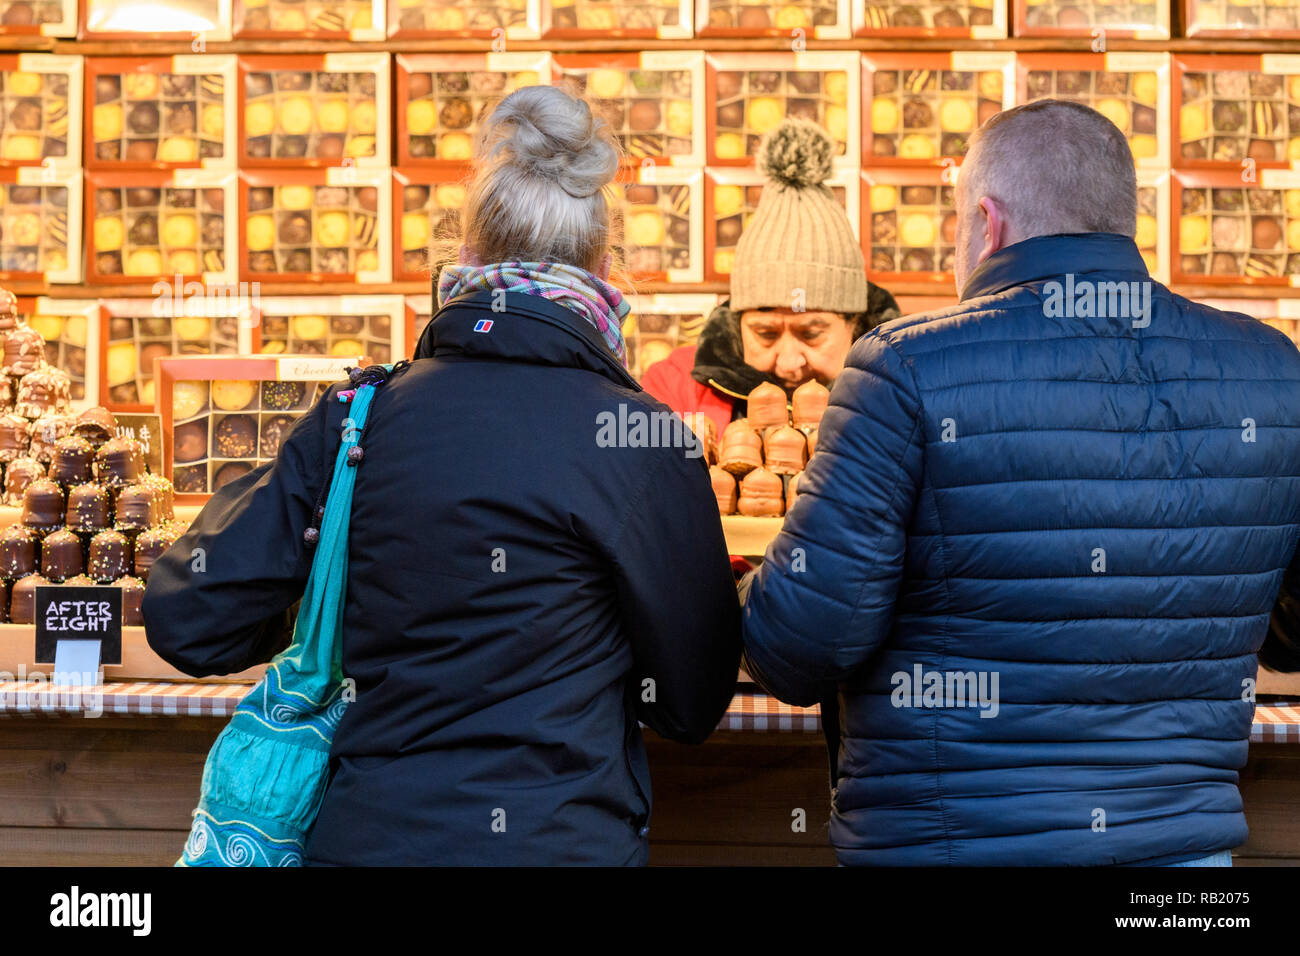 People at Christmas Market stall (potential customers) served by trader, buying chocolates (chocolate teacakes displayed in boxes) - York, England, UK - Stock Image